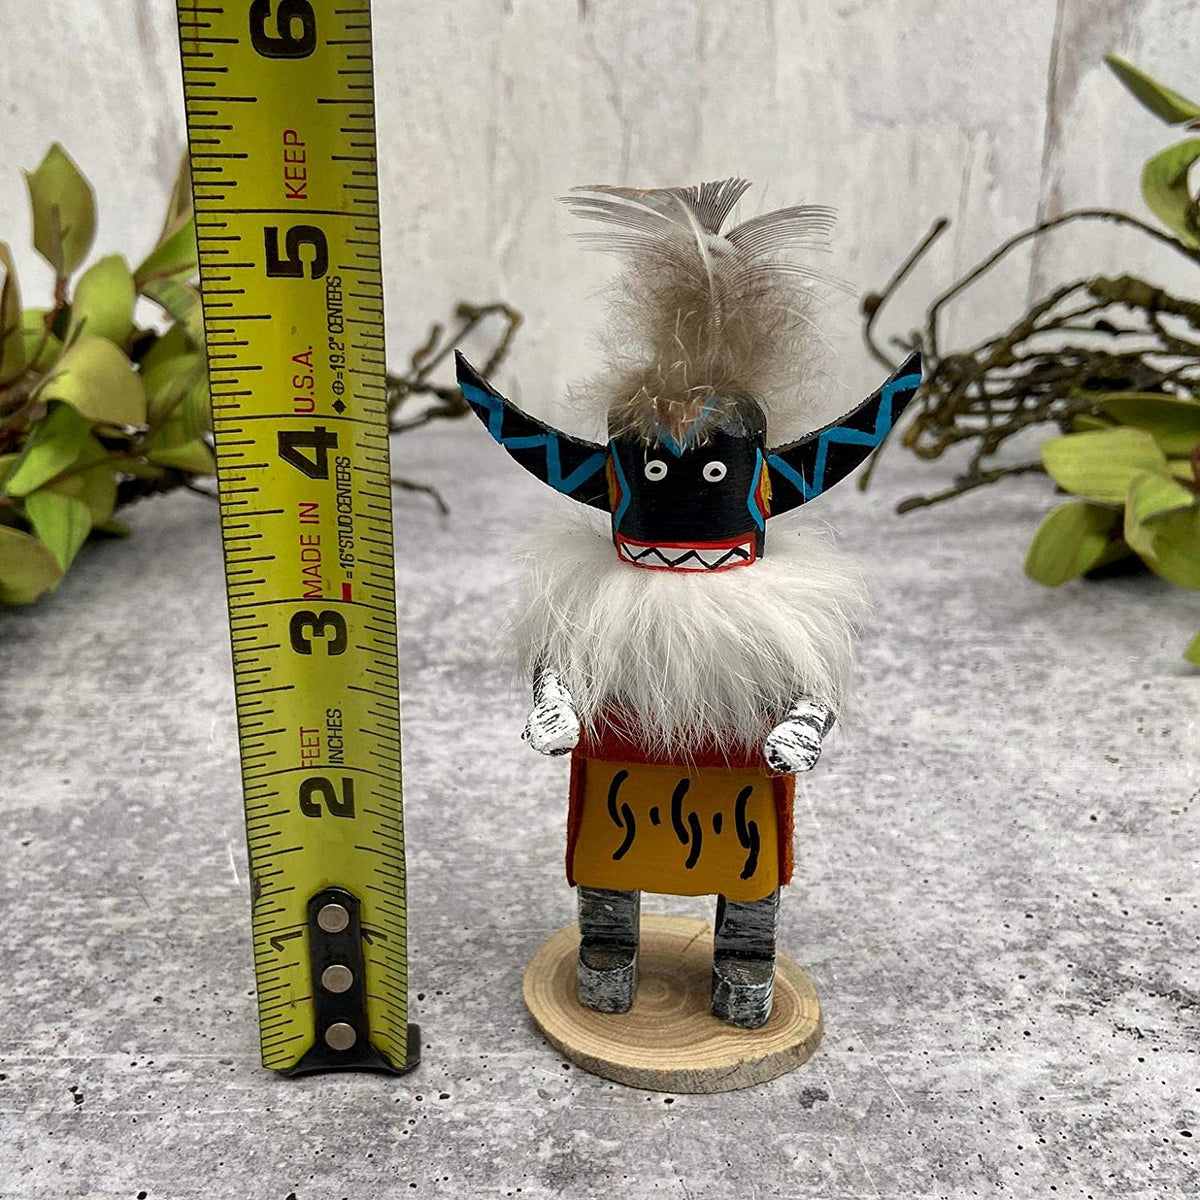 4 Inch Authentic Angry Kachina Doll, Miniature, Genuine Navajo Native American Tribe Handmade in the USA, Artist Signed, Natural Materials, Southwestern Collectible Figurine